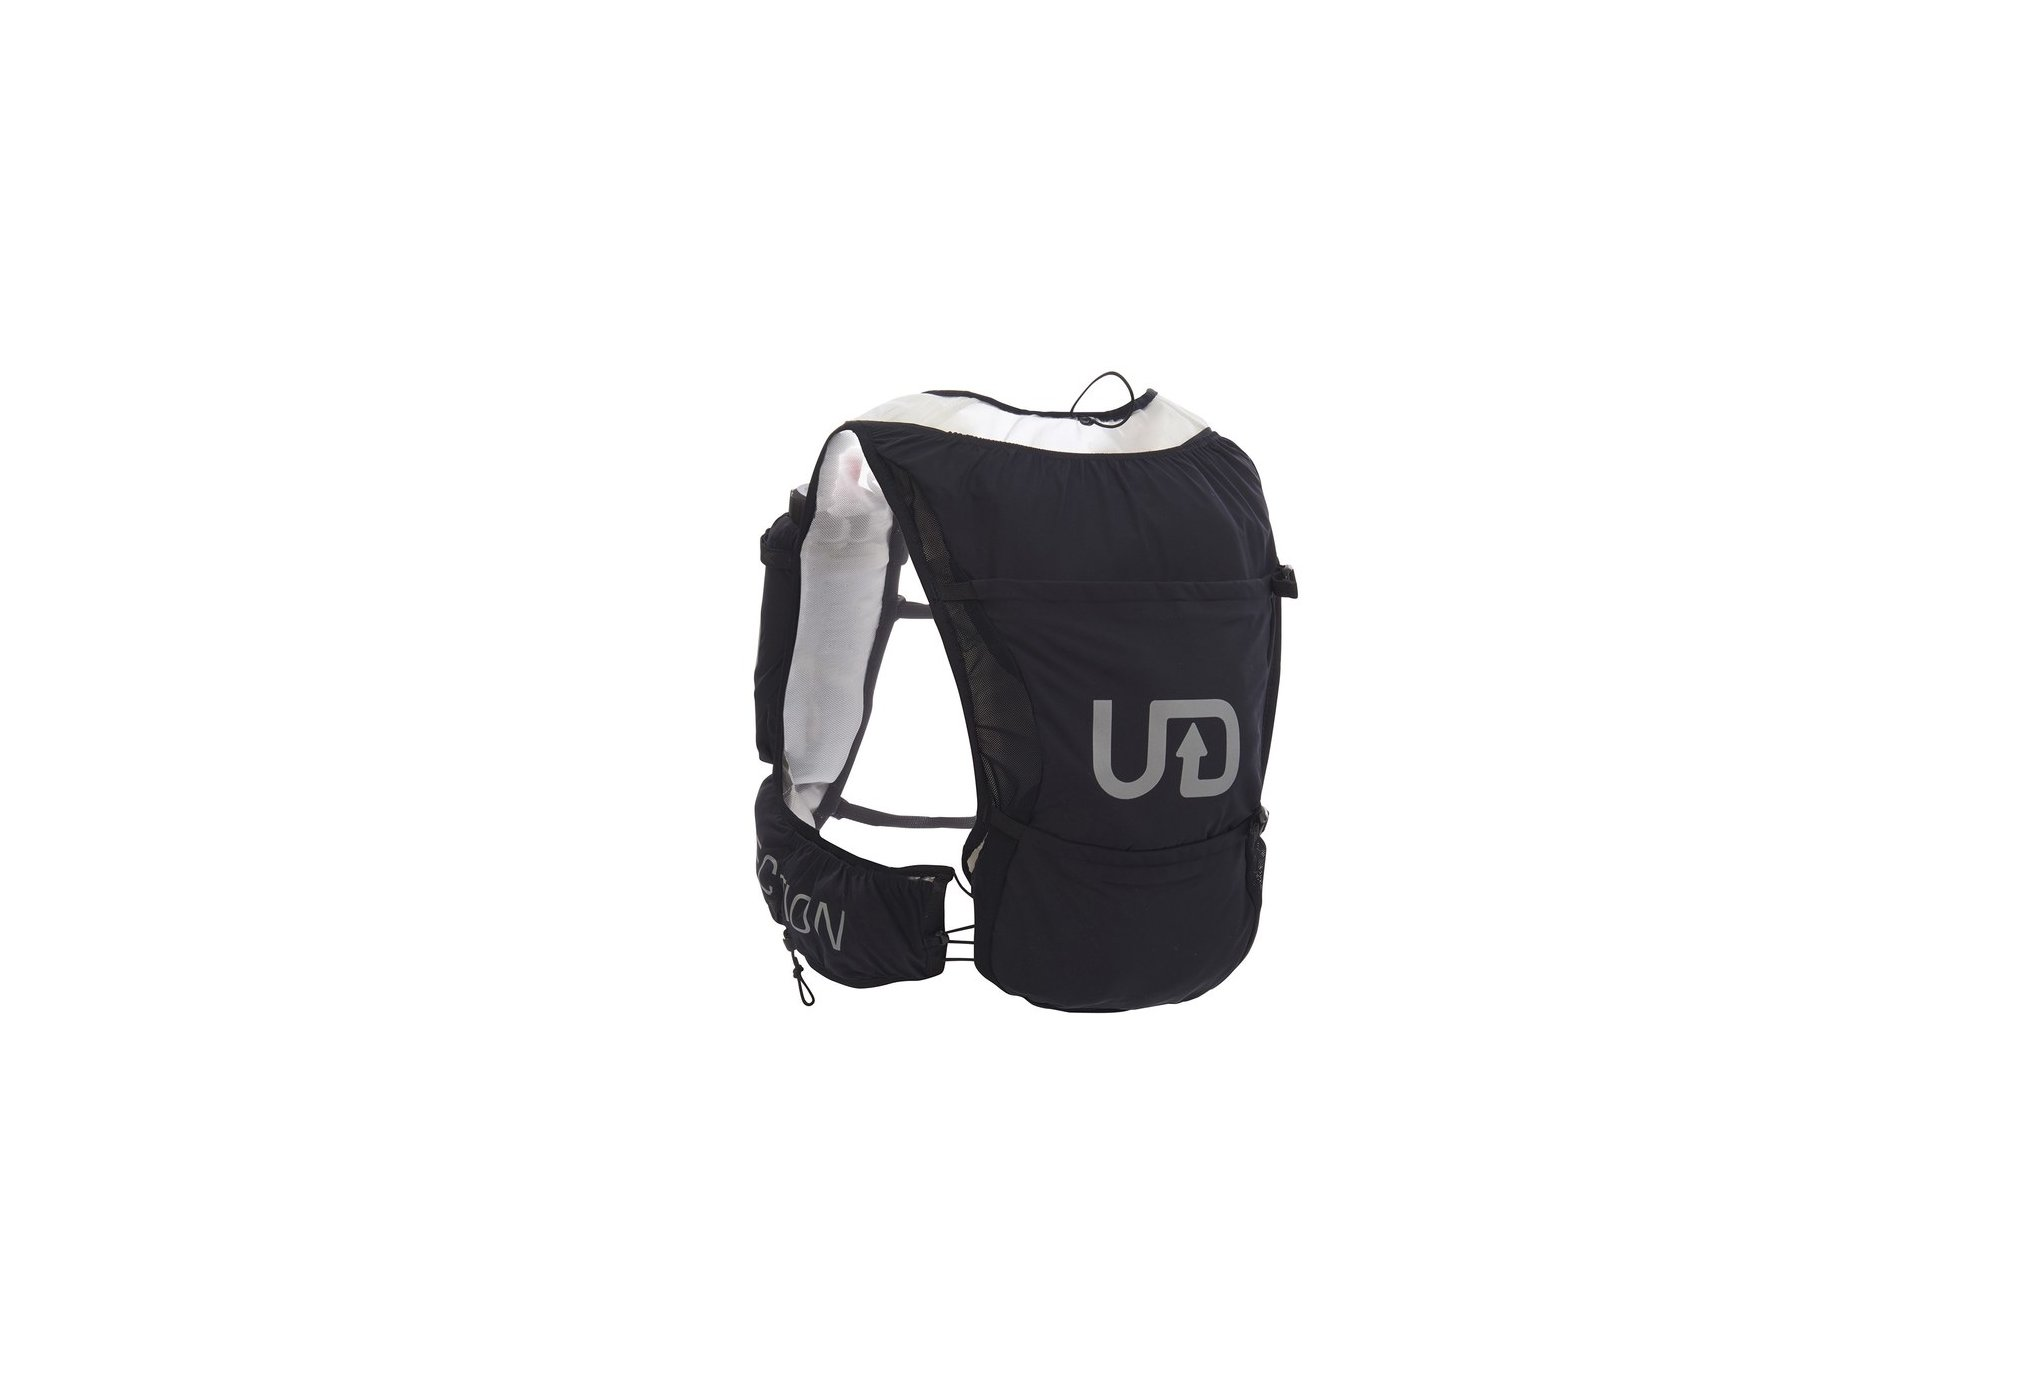 Ultimate Direction Halo M Sac hydratation / Gourde